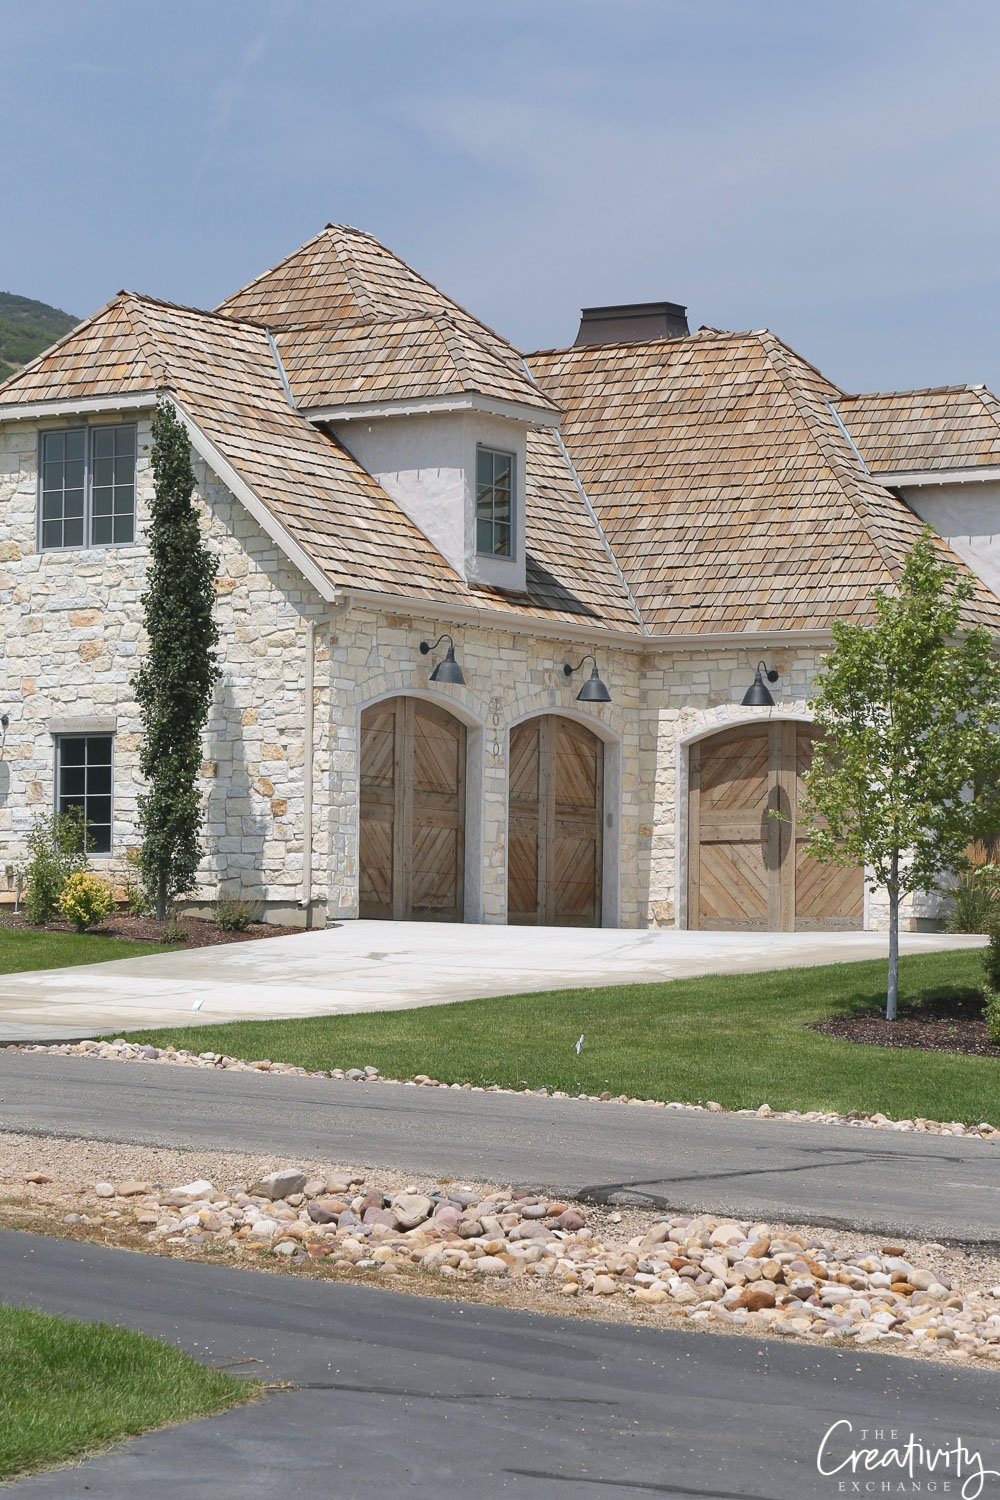 Stone exterior home with reclaimed wood garages.